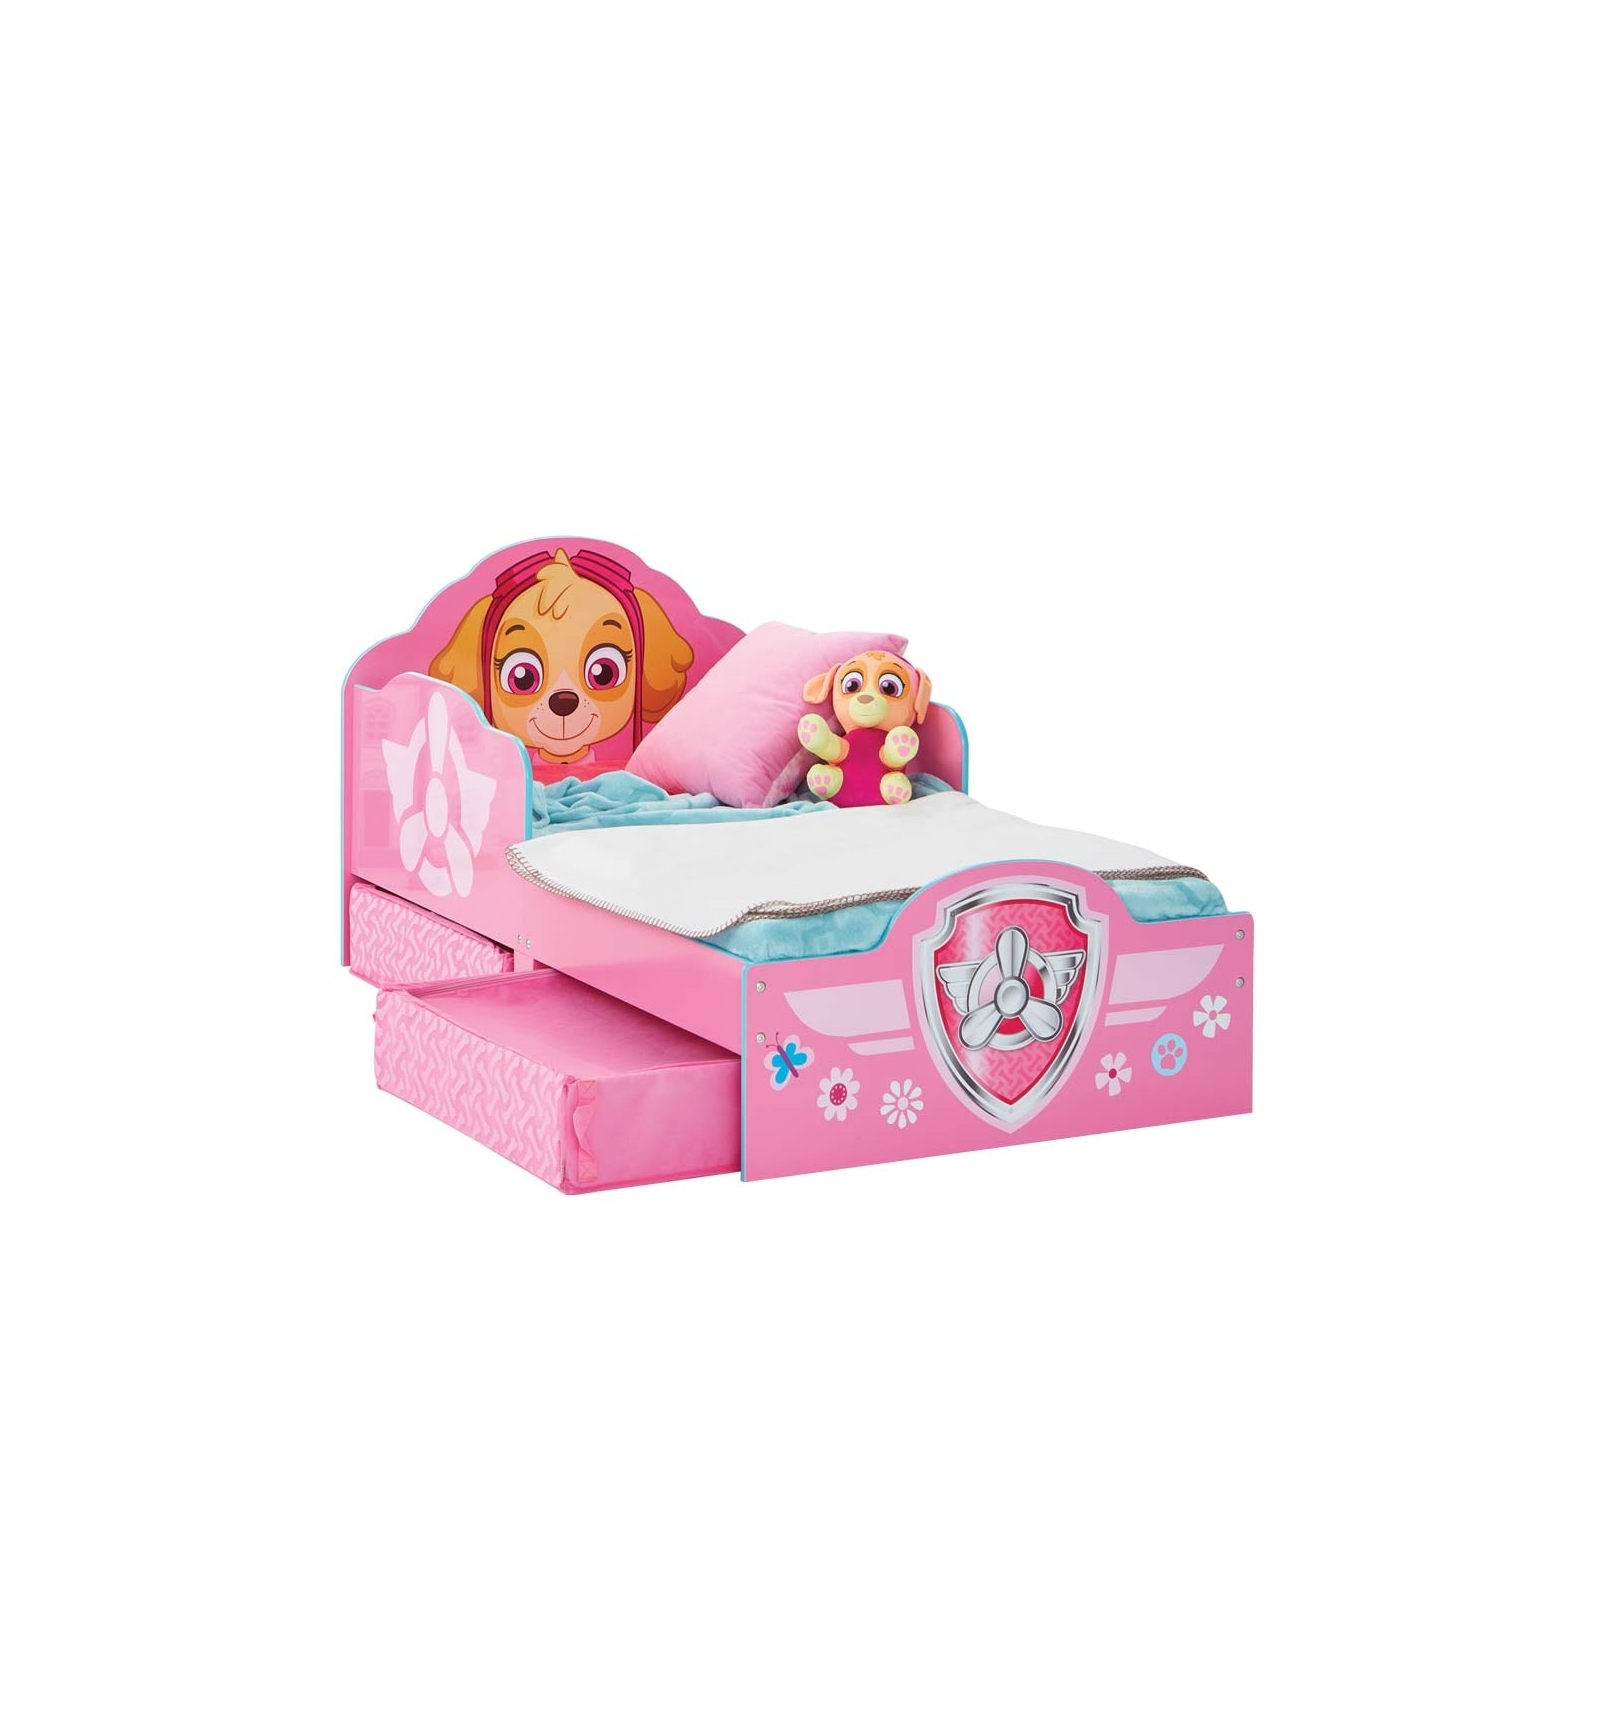 kinderbett mit schubladen skye paw patrol. Black Bedroom Furniture Sets. Home Design Ideas